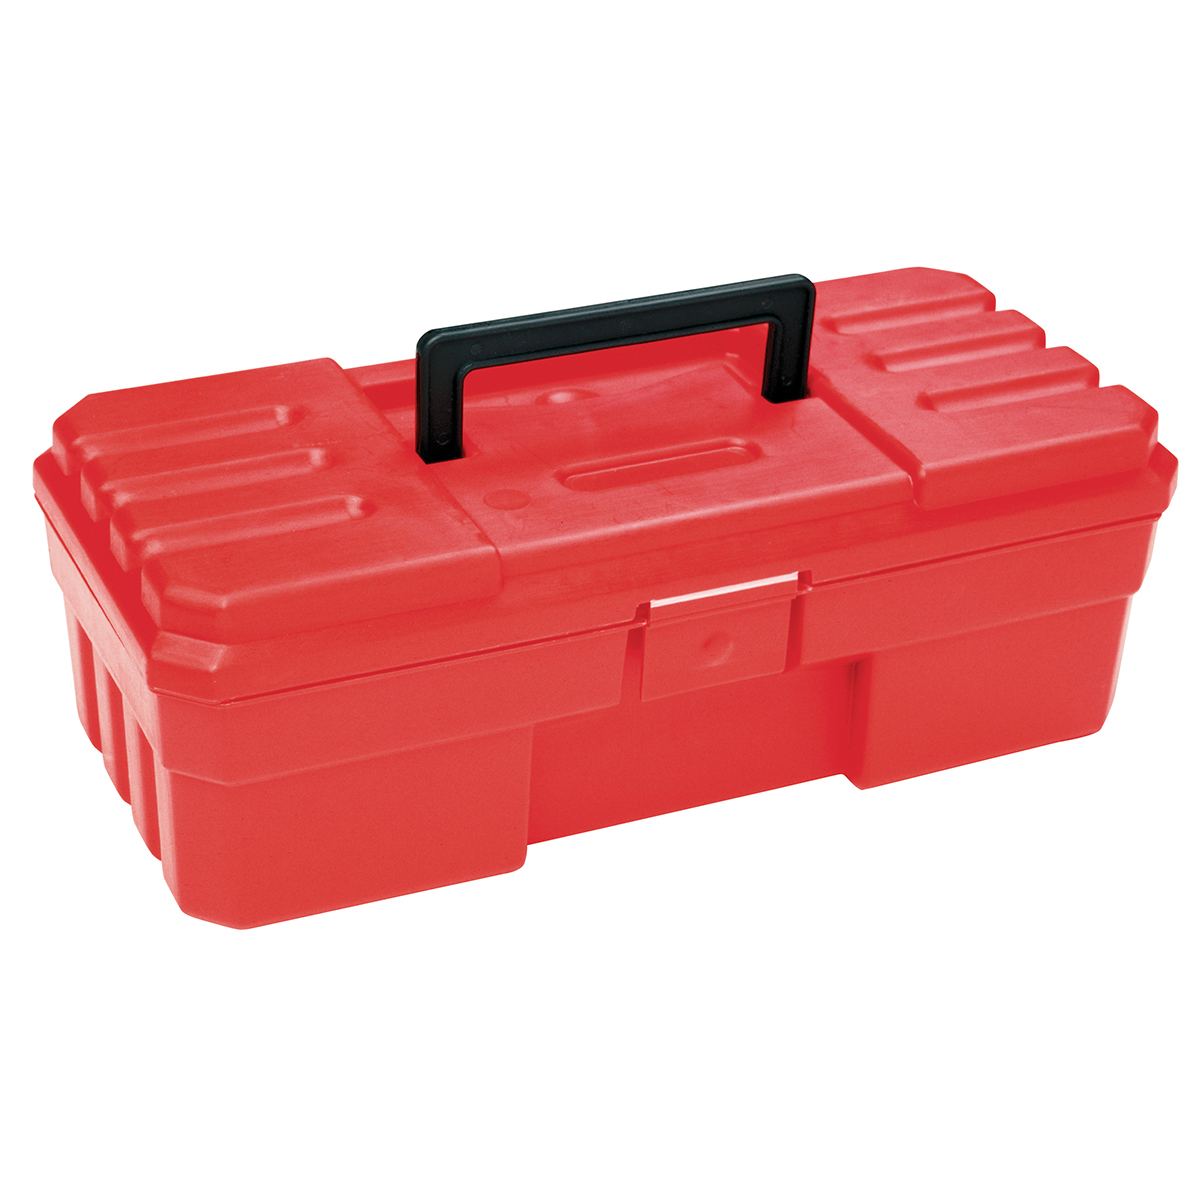 ProBox Toolbox 6 x 12 x 4, Red (09912).  This item sold in carton quantities of 12.